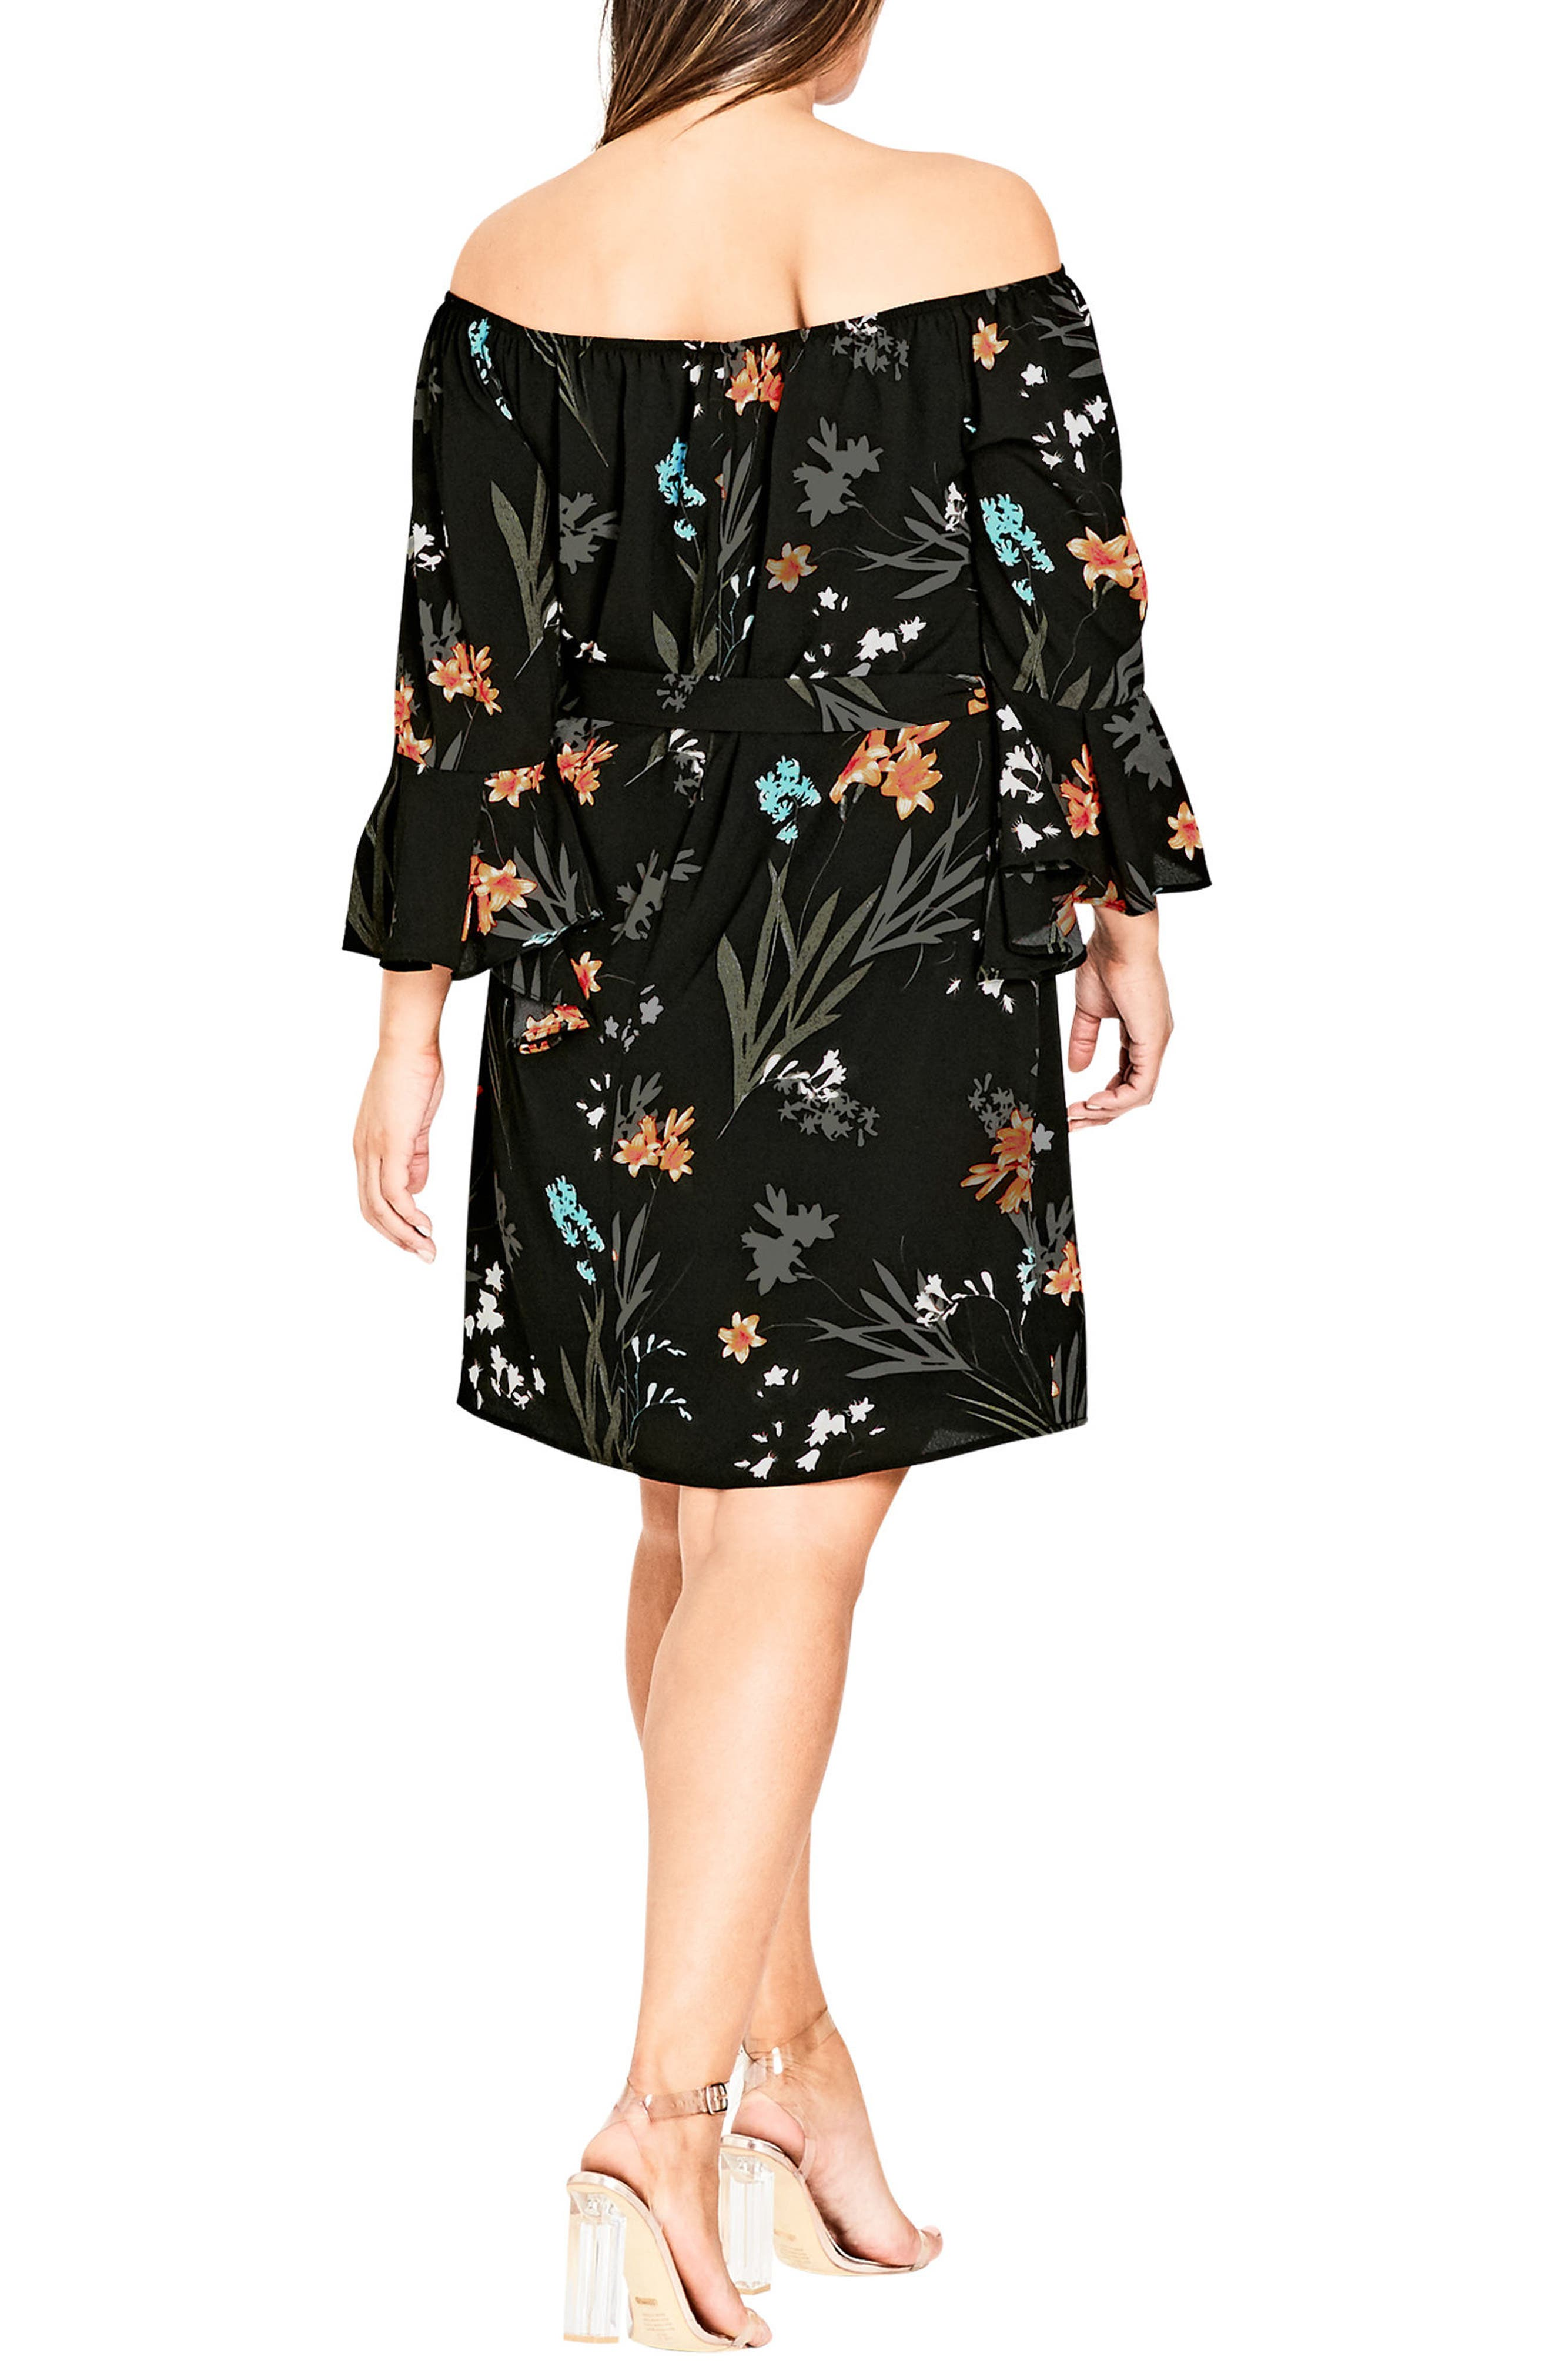 Wild Floral Off the Shoulder Tunic Dress,                             Alternate thumbnail 2, color,                             Wild Floral